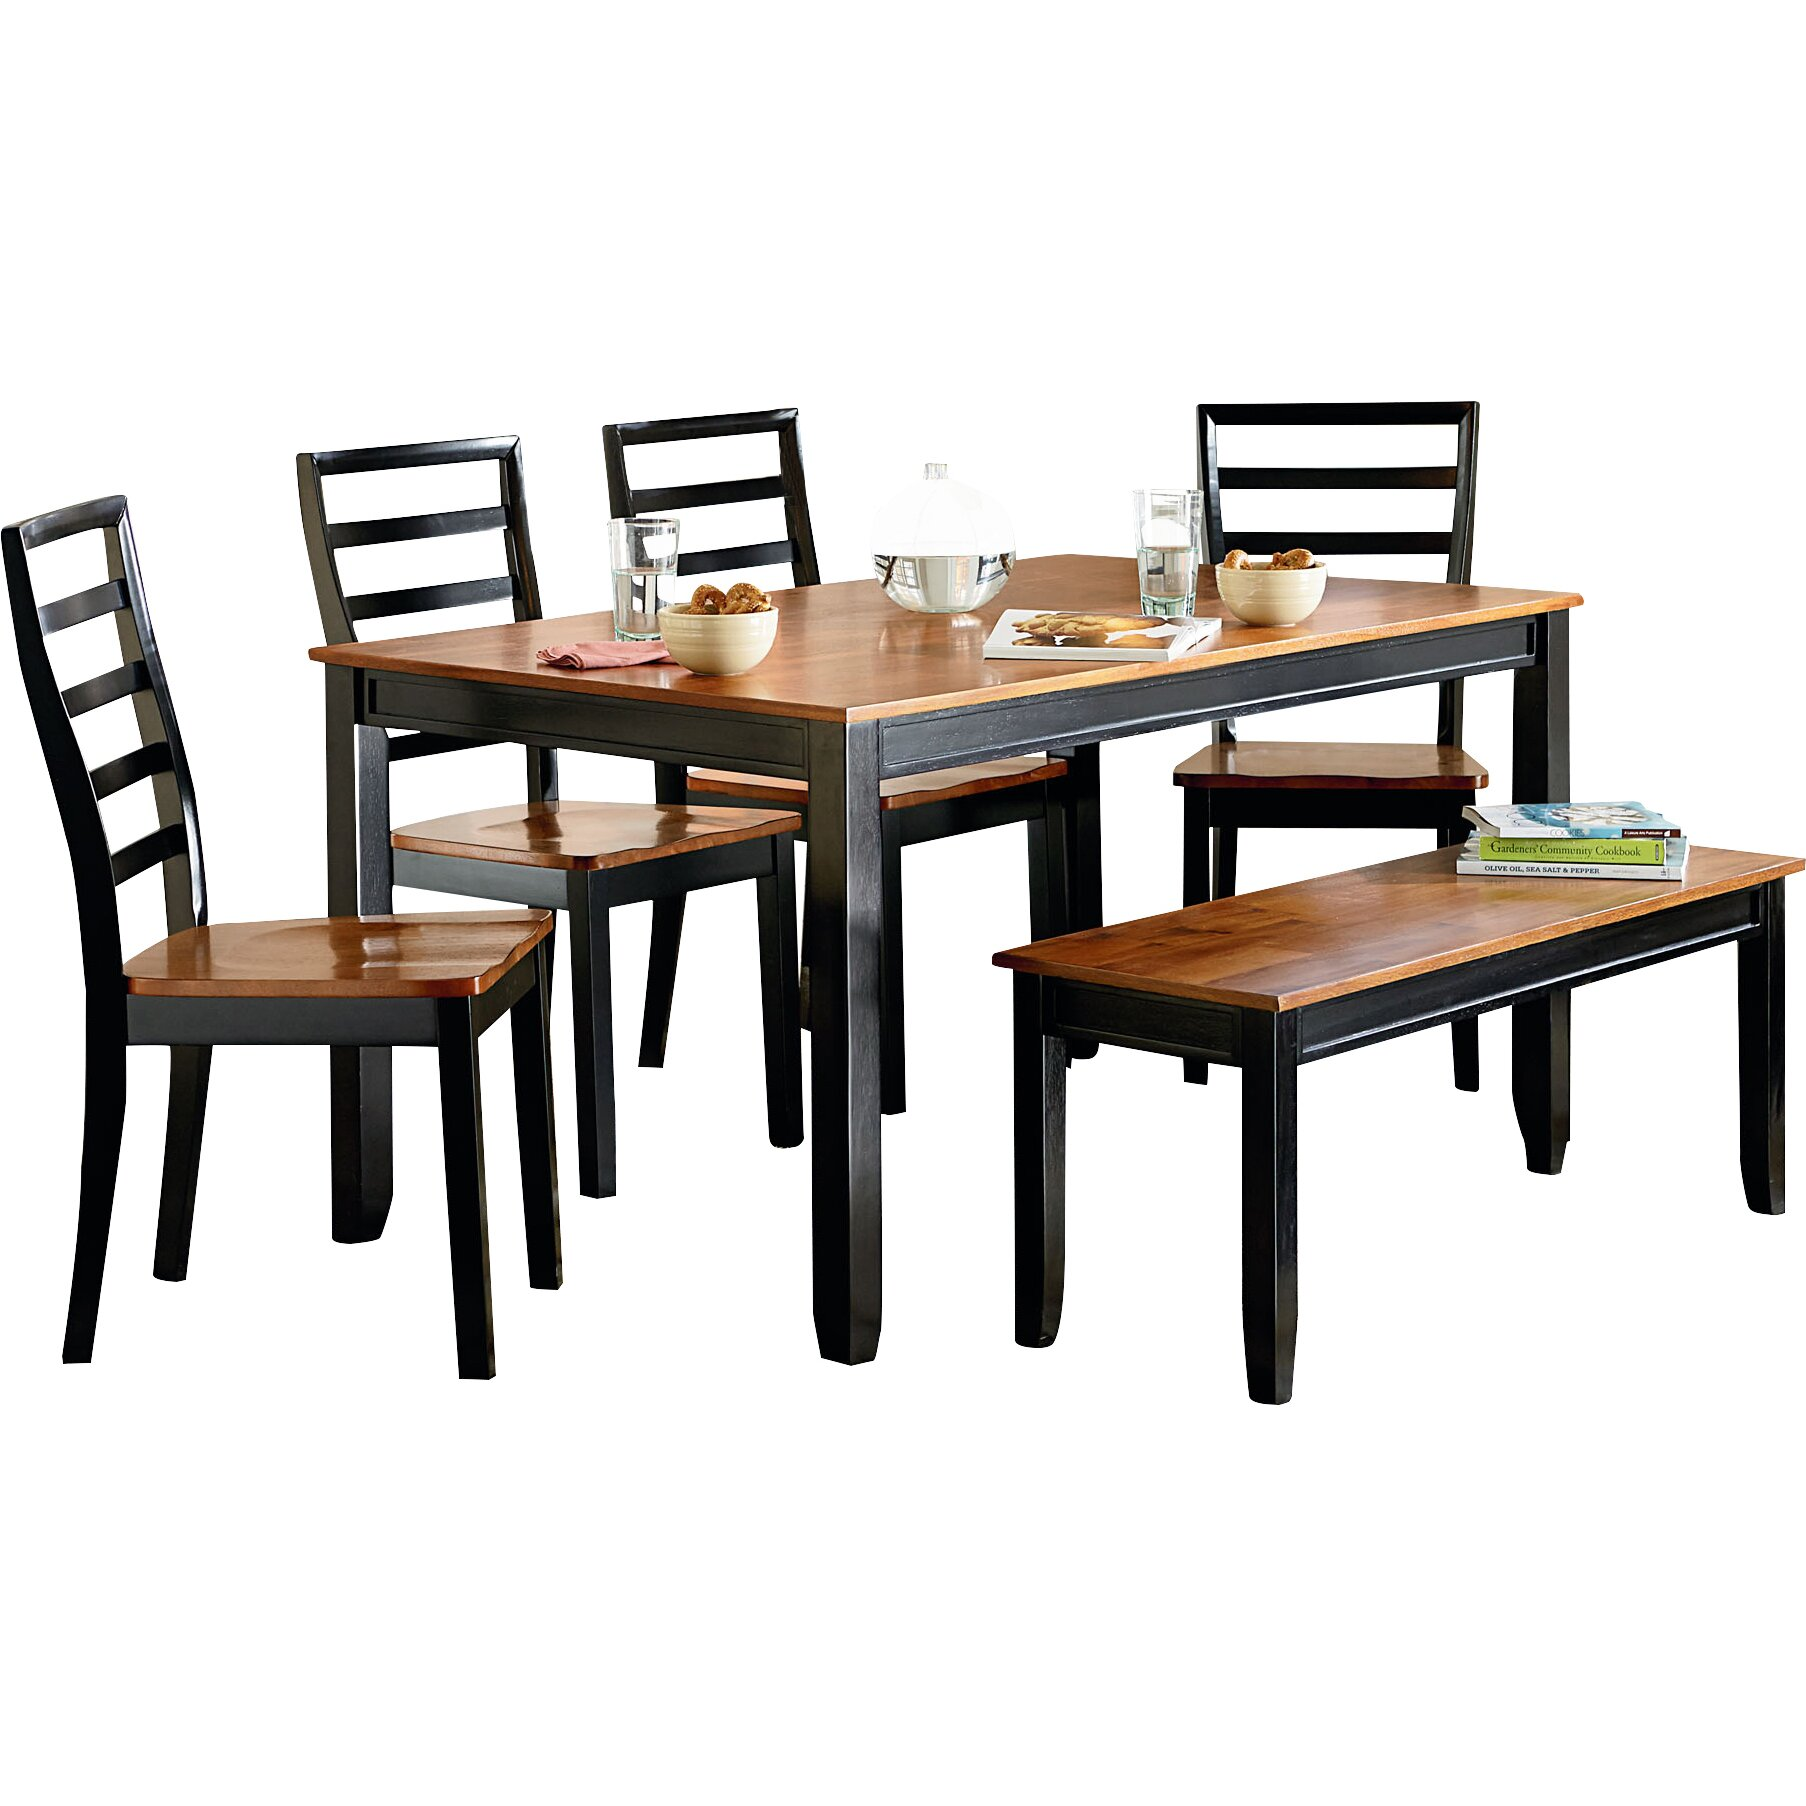 Standard furniture lexford 5 piece dining set reviews for 5 piece dining set